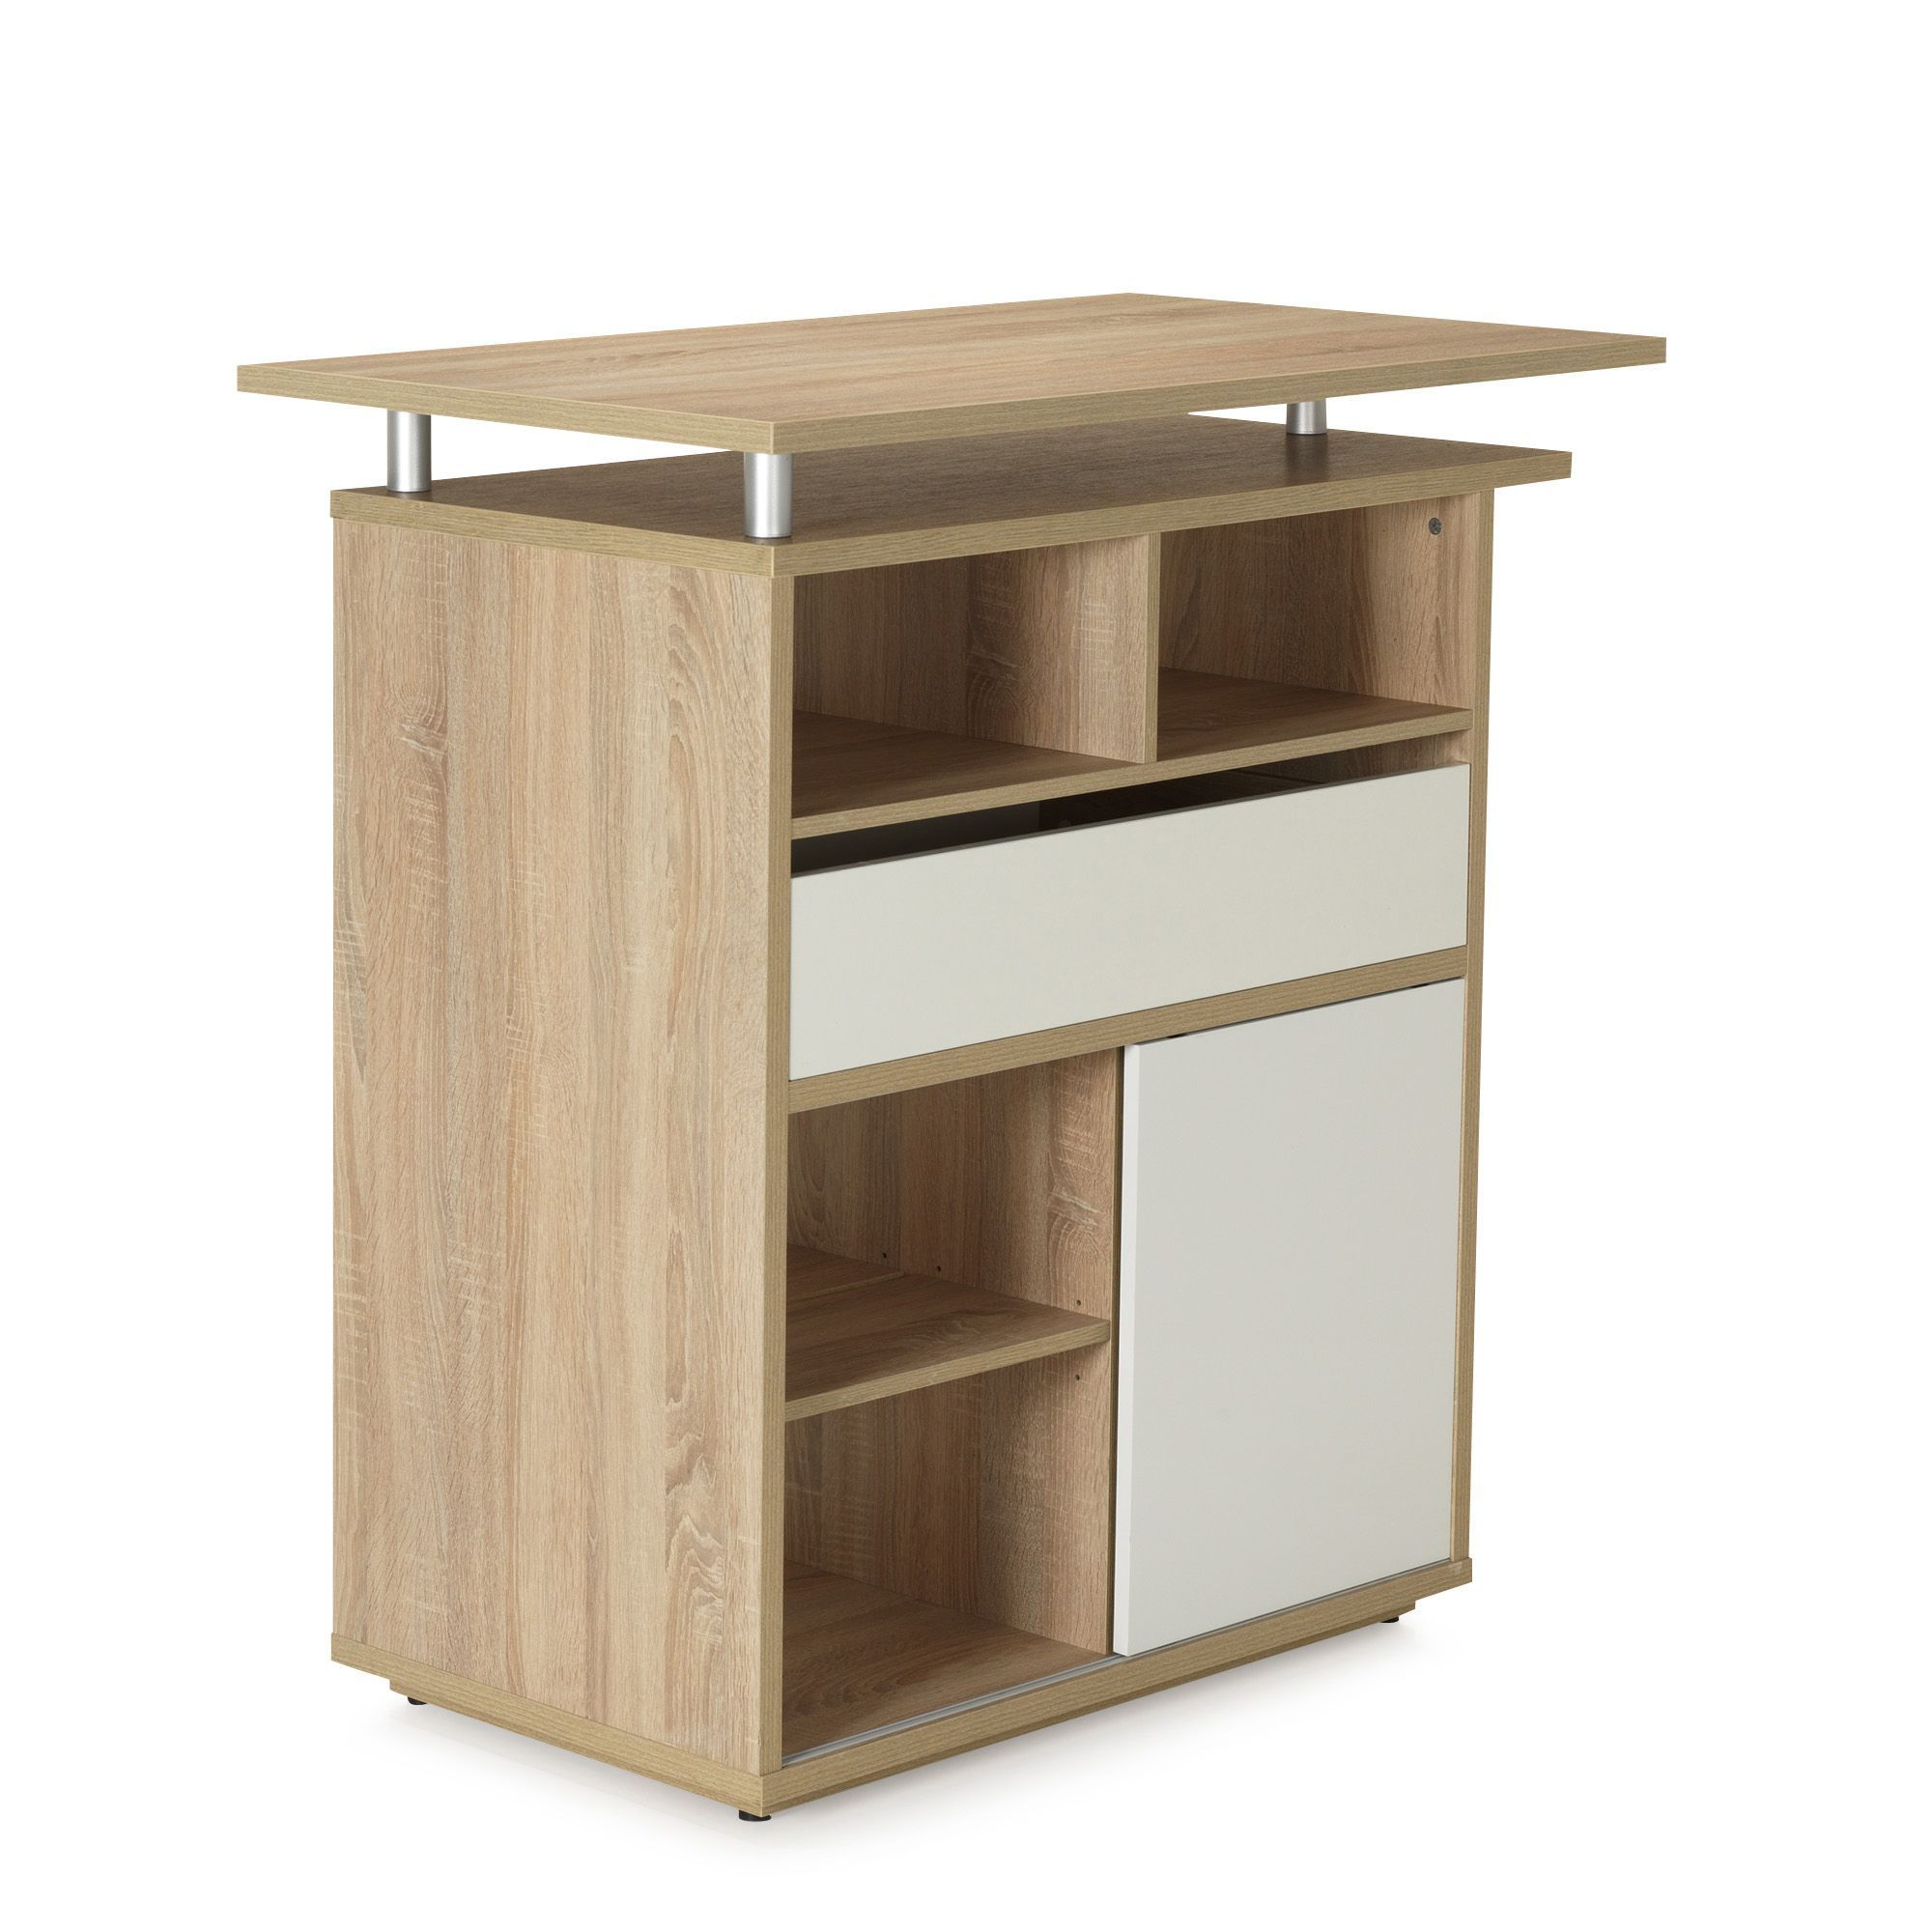 Alinea Meuble Scandinave Meuble Snack Bar Au Design Scandinave Imitation Chêne Blanc